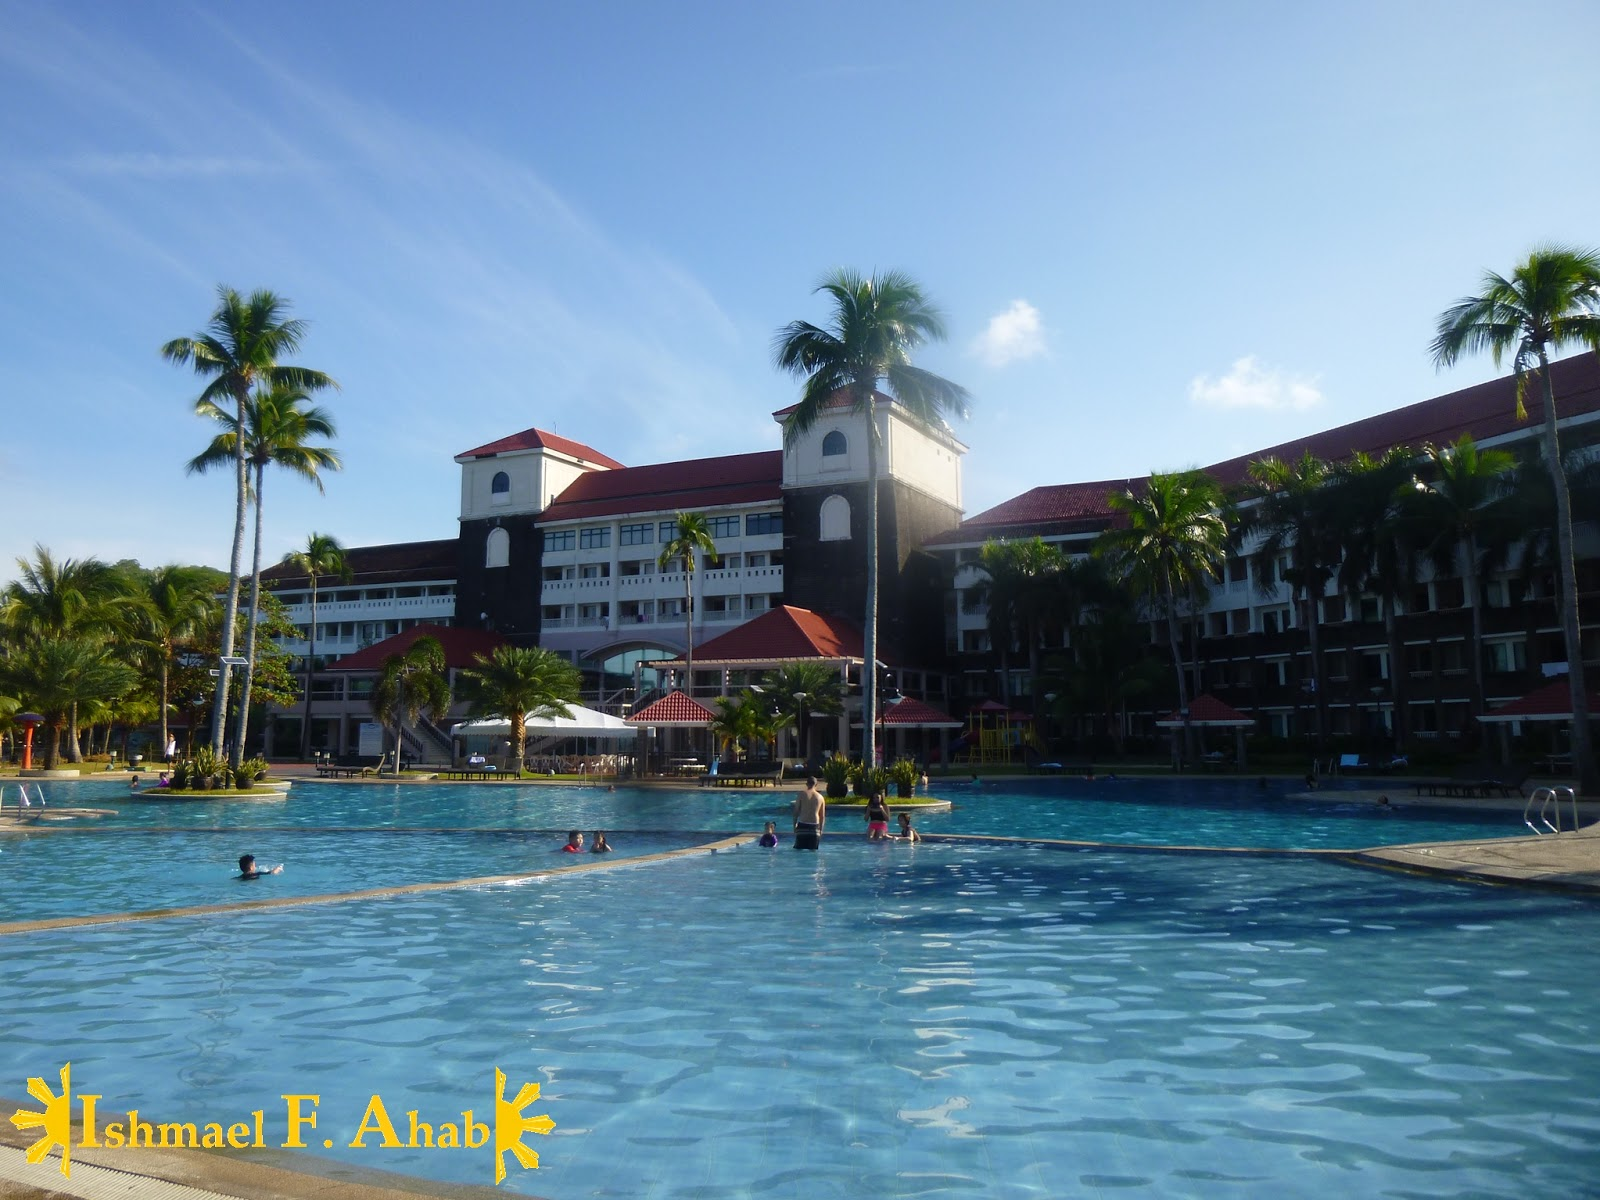 La Familia Ahab S First Grand Outing Overnight Special In Canyon Cove Beach Resort In Nasugbu